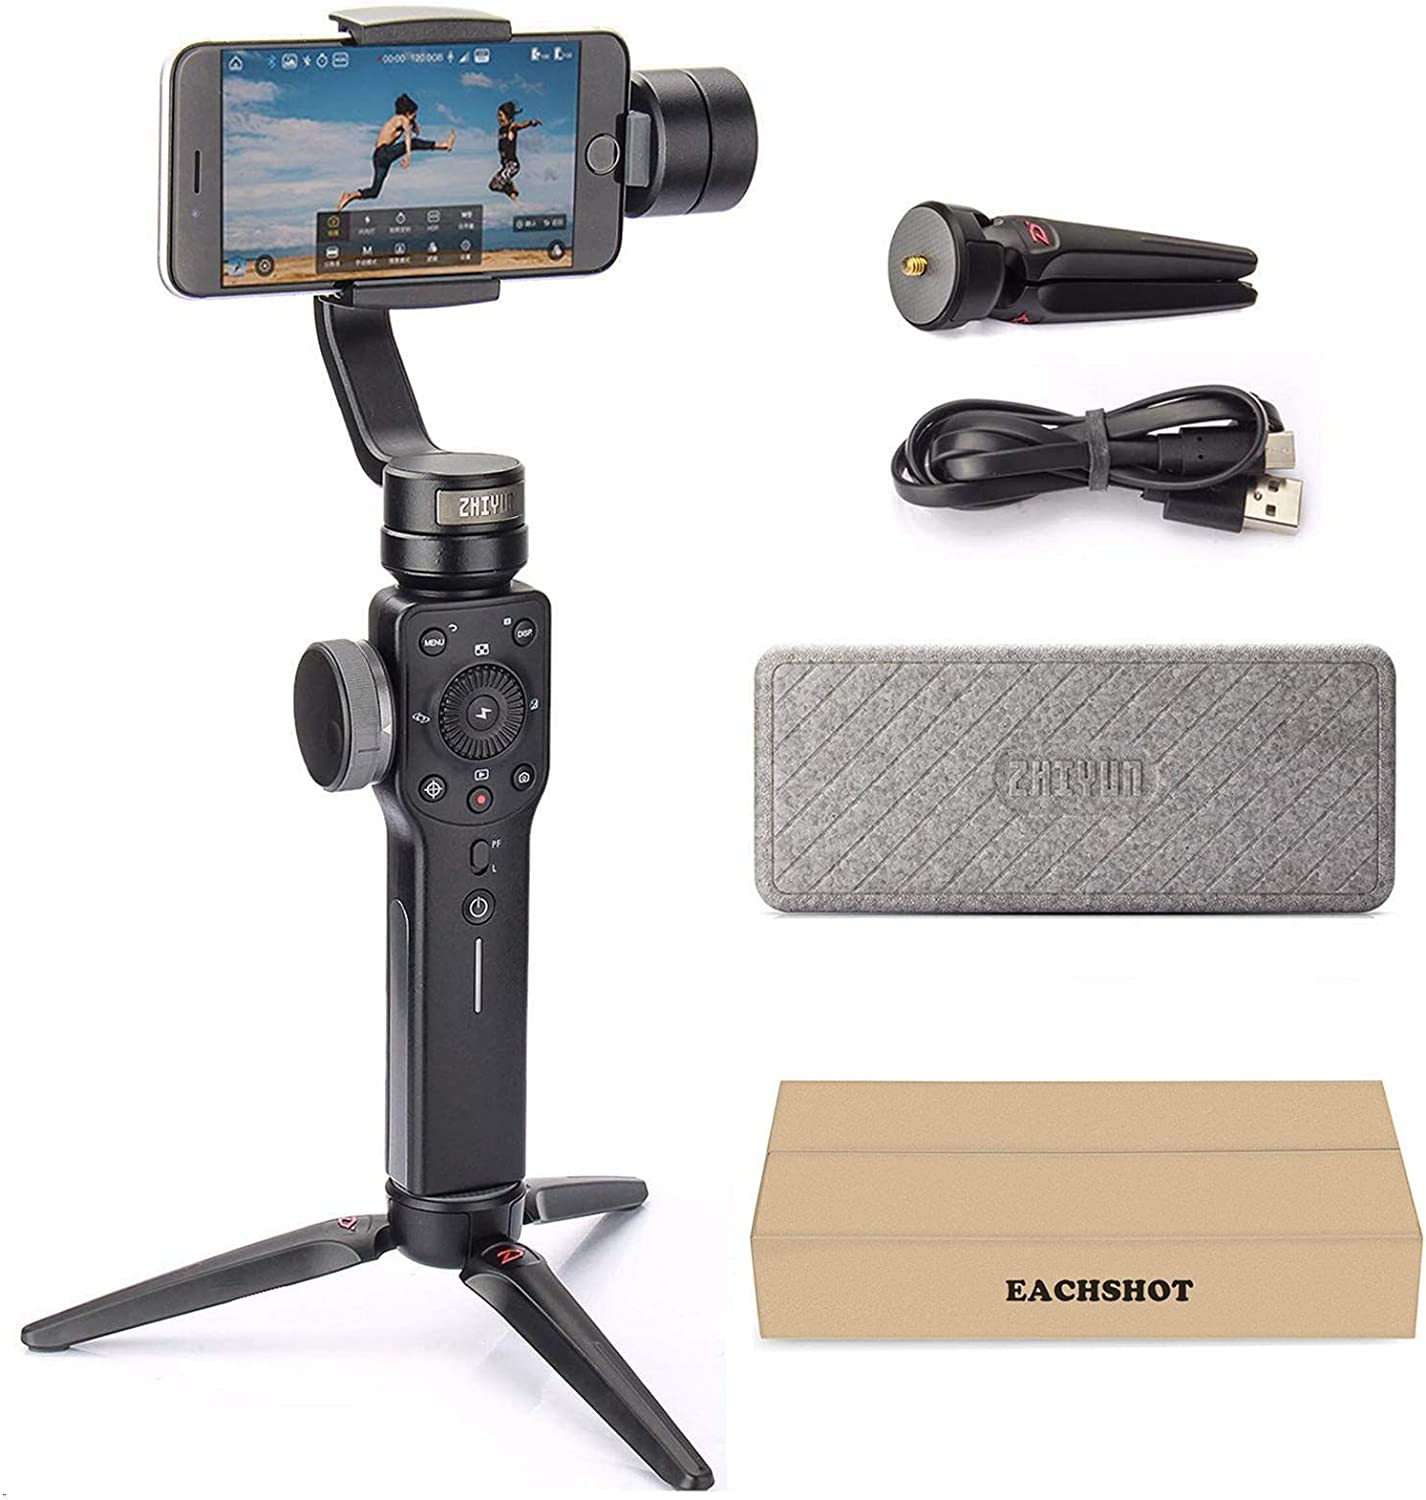 Zhiyun Smooth 4 3-Axis Handheld Gimbal Stabilizer YouTube Video Vlog Tripod for iPhone 11 Pro Xs Max Xr X 8 Plus 7 6 SE Android Cell Phone Smartphone : Camera & Photo